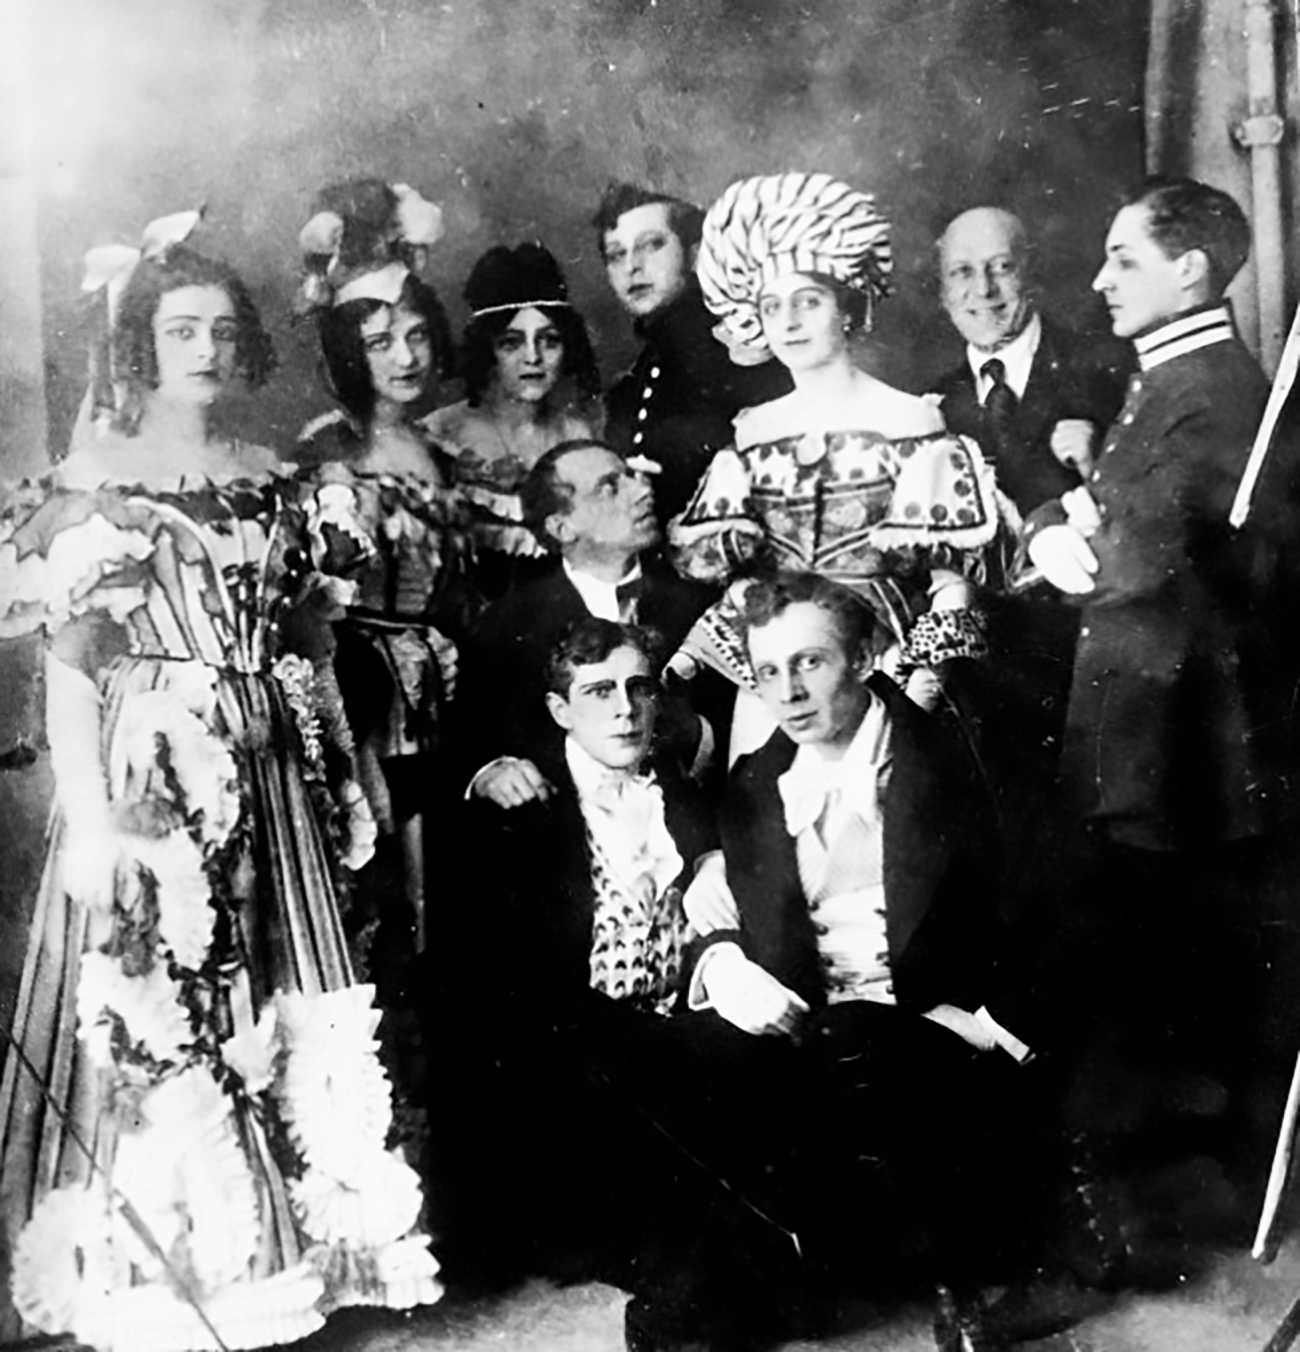 Vsevolod Meyerhold (С, looking right) with his troupe / Alexandrinsky Theatre